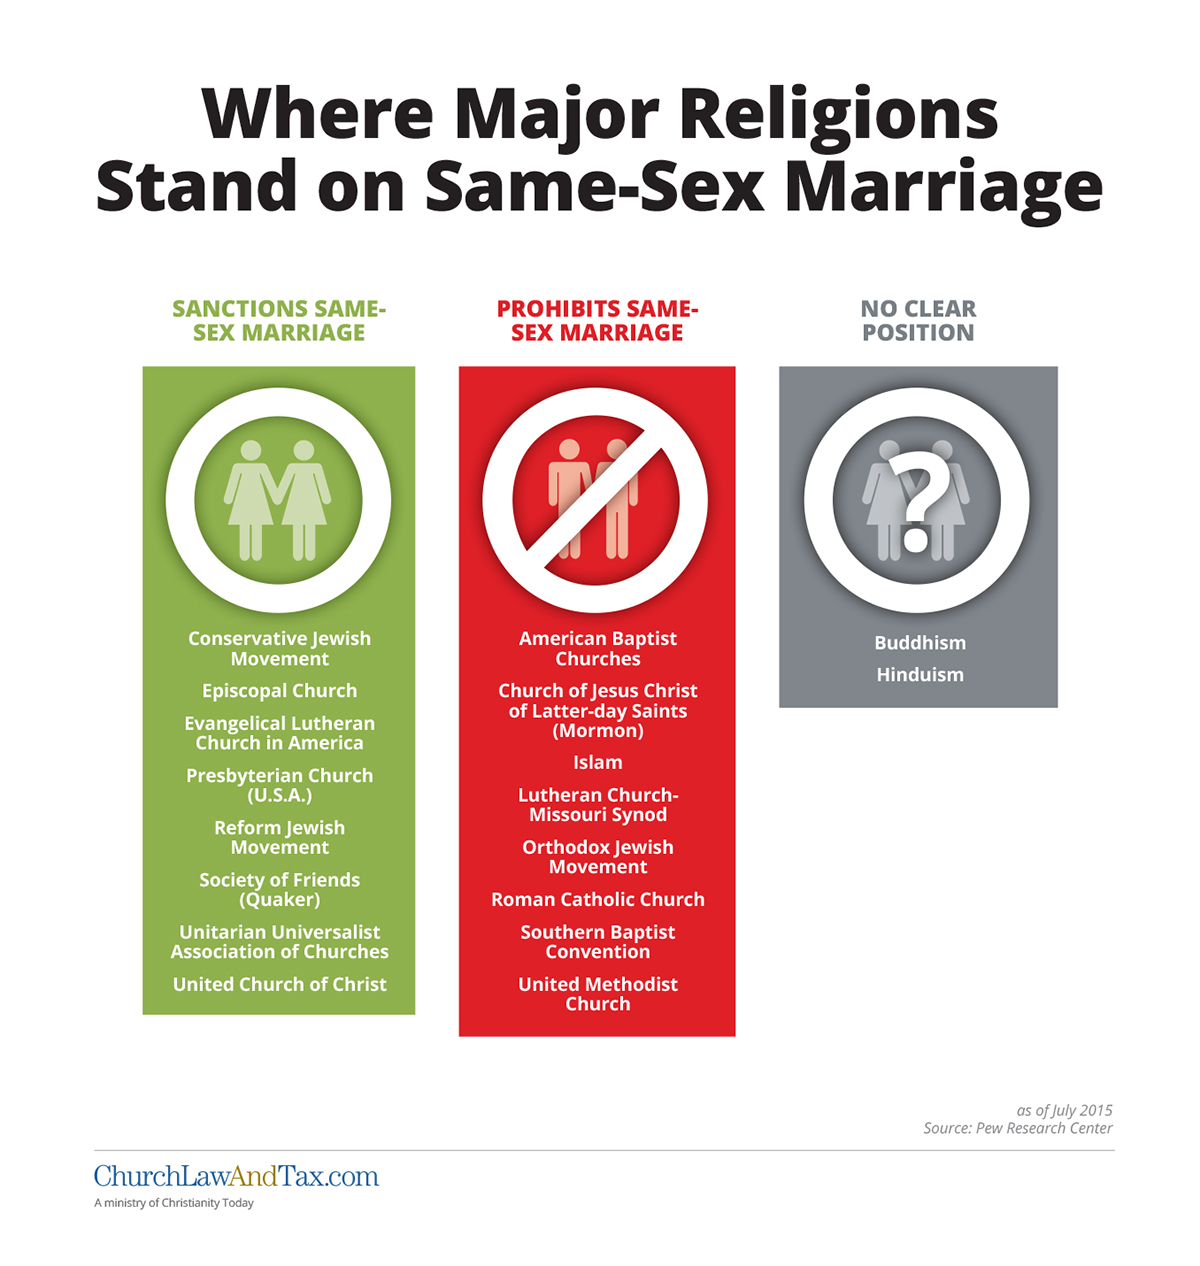 Buddhist view on homosexual marriage legal